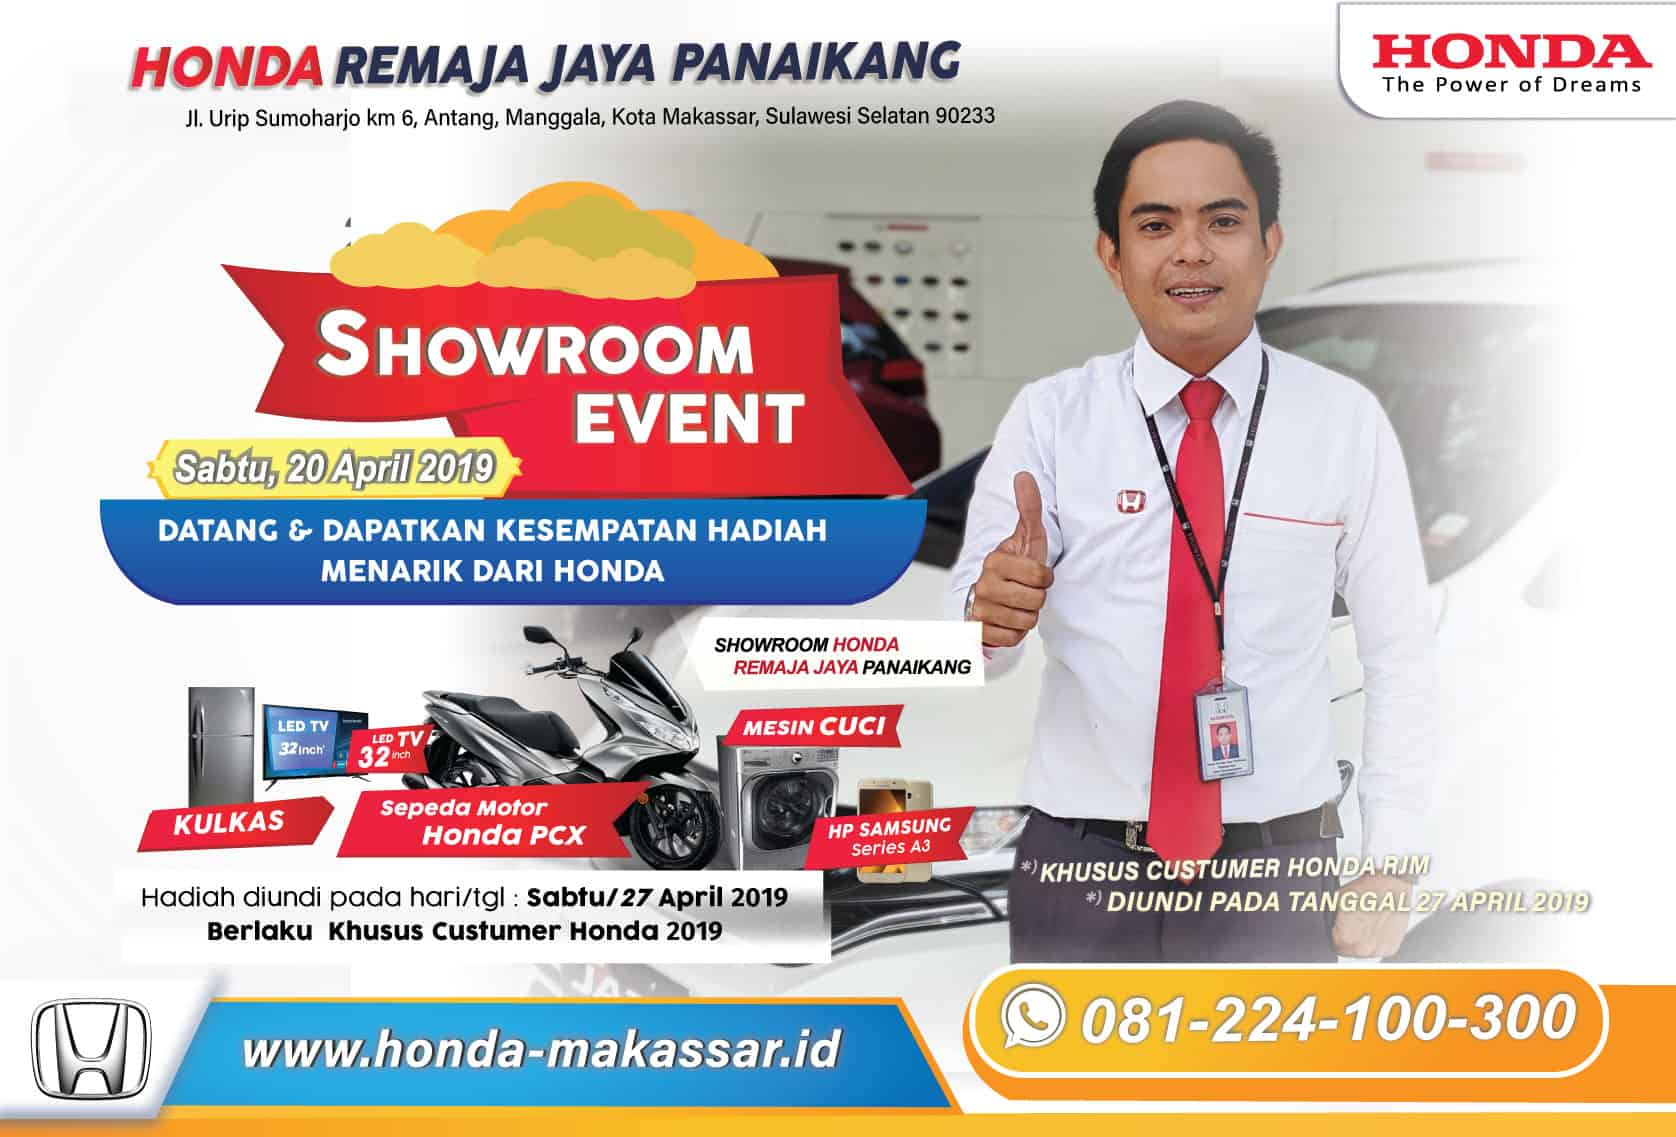 SHOWROOM EVENT 2019 HONDA RJM PANAIKANG MAKASSAR